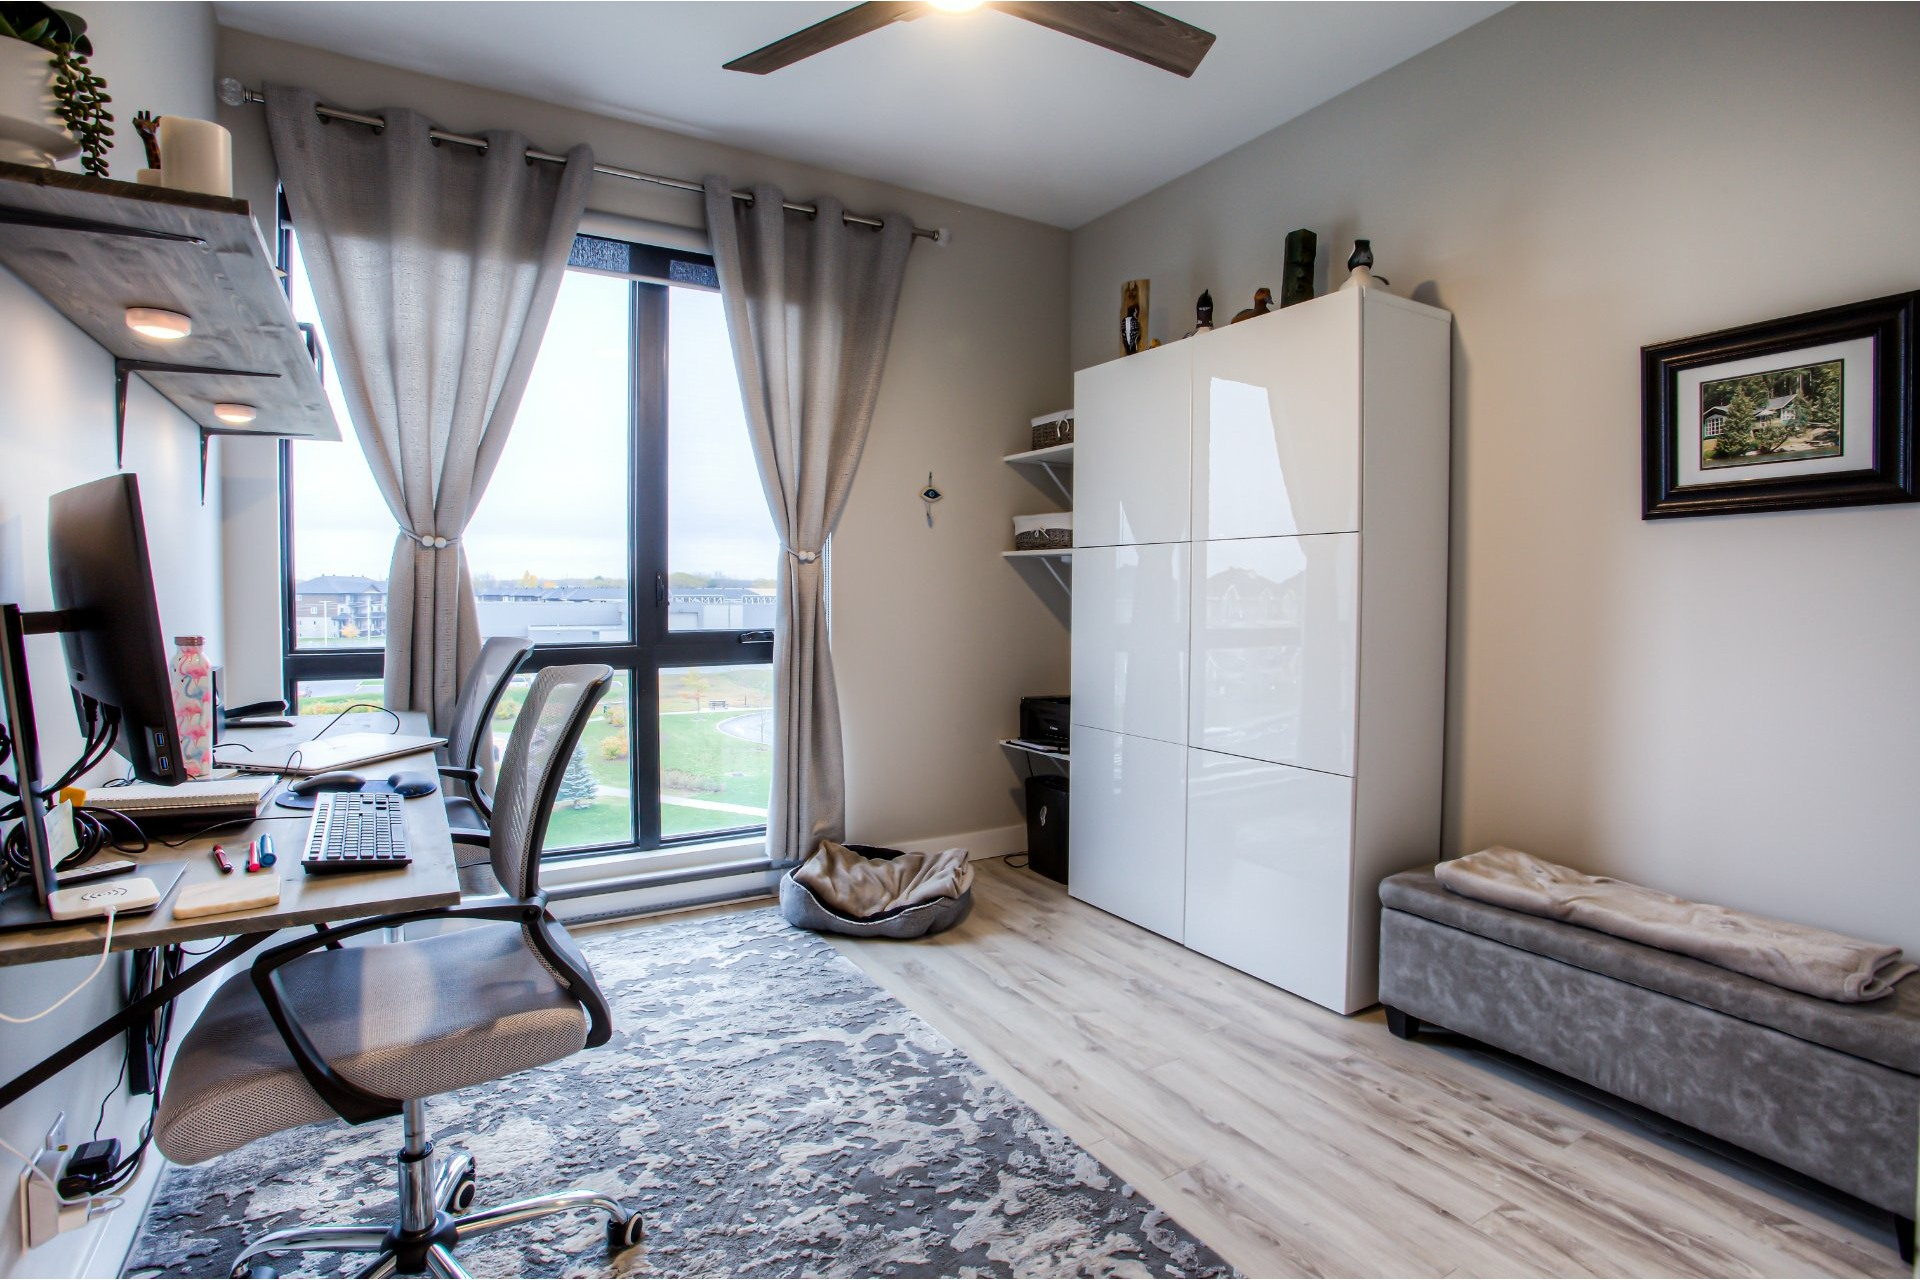 image 13 - Apartment For sale Vaudreuil-Dorion - 7 rooms